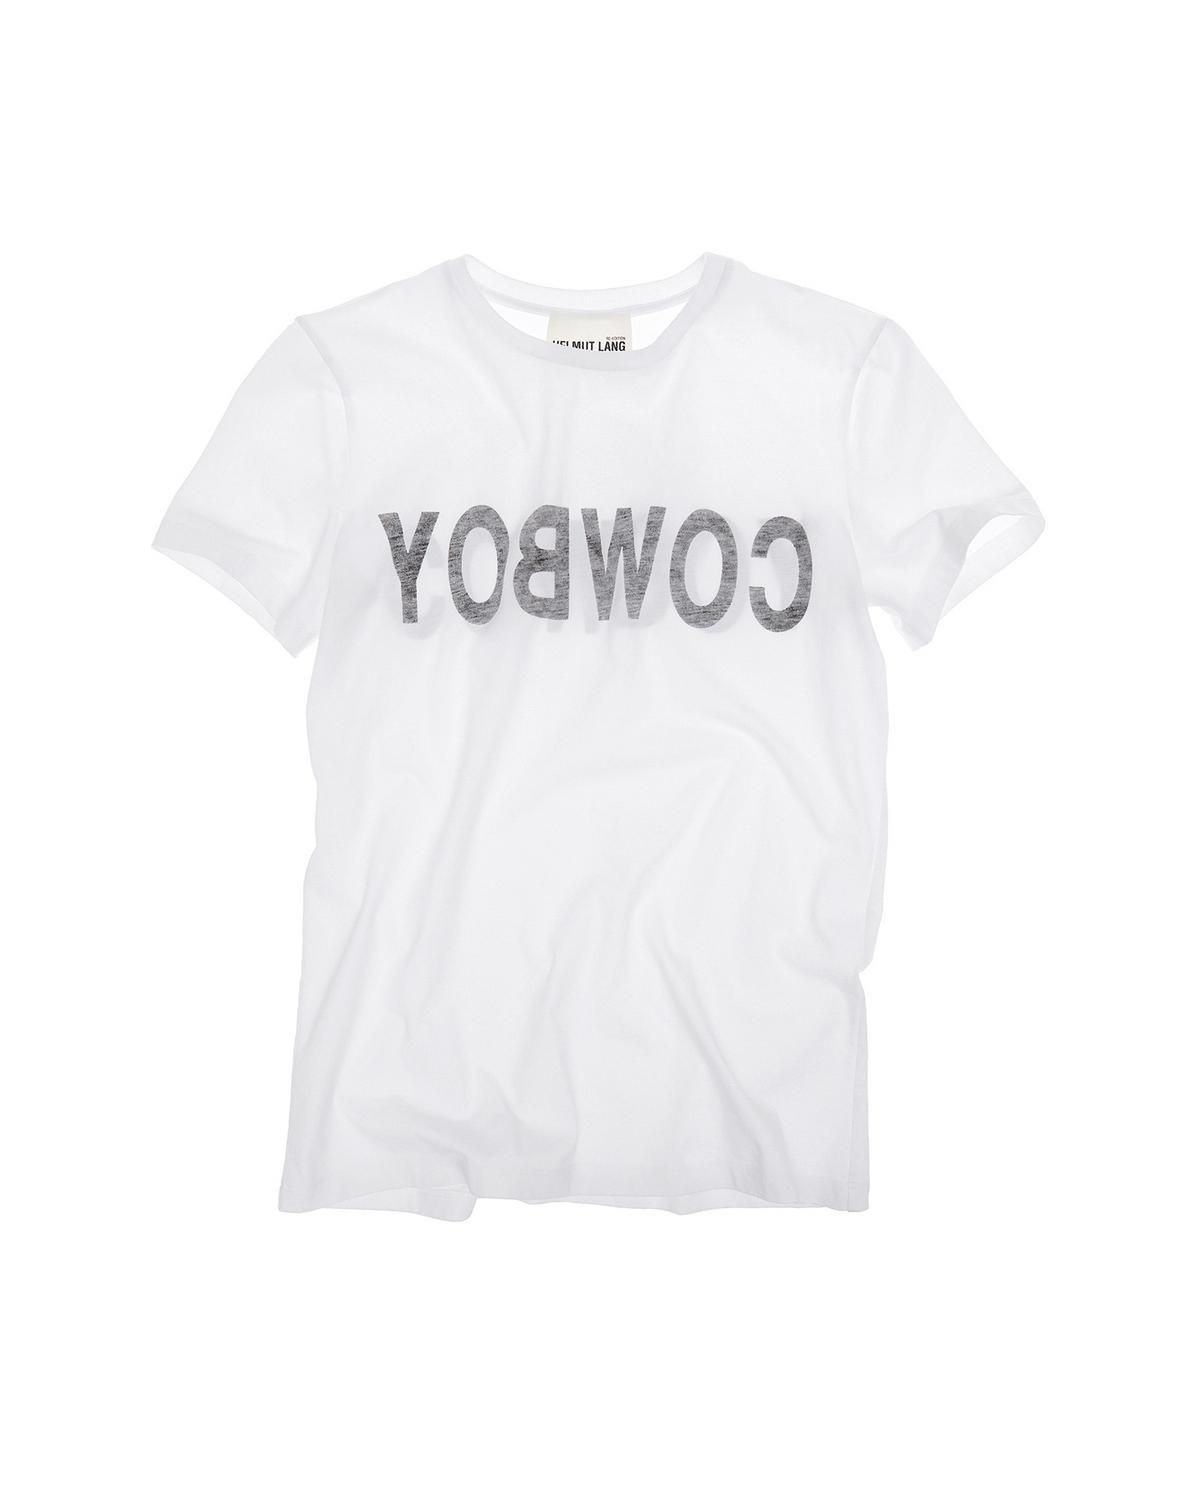 Pin By Wally On Jesse Jo In 2020 Helmut Lang T Shirt Shirts